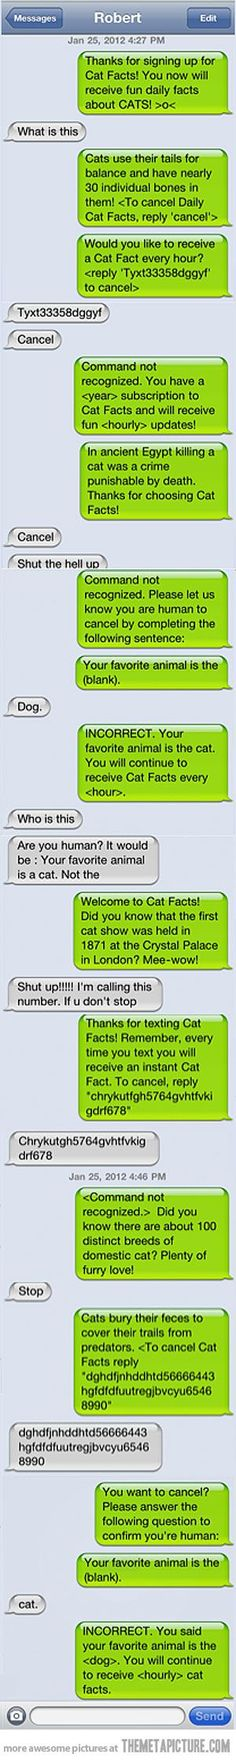 funny text message prank cats... I have a friend I could mess with for HOURS doing that.. I may need to change my number soon just to do it: